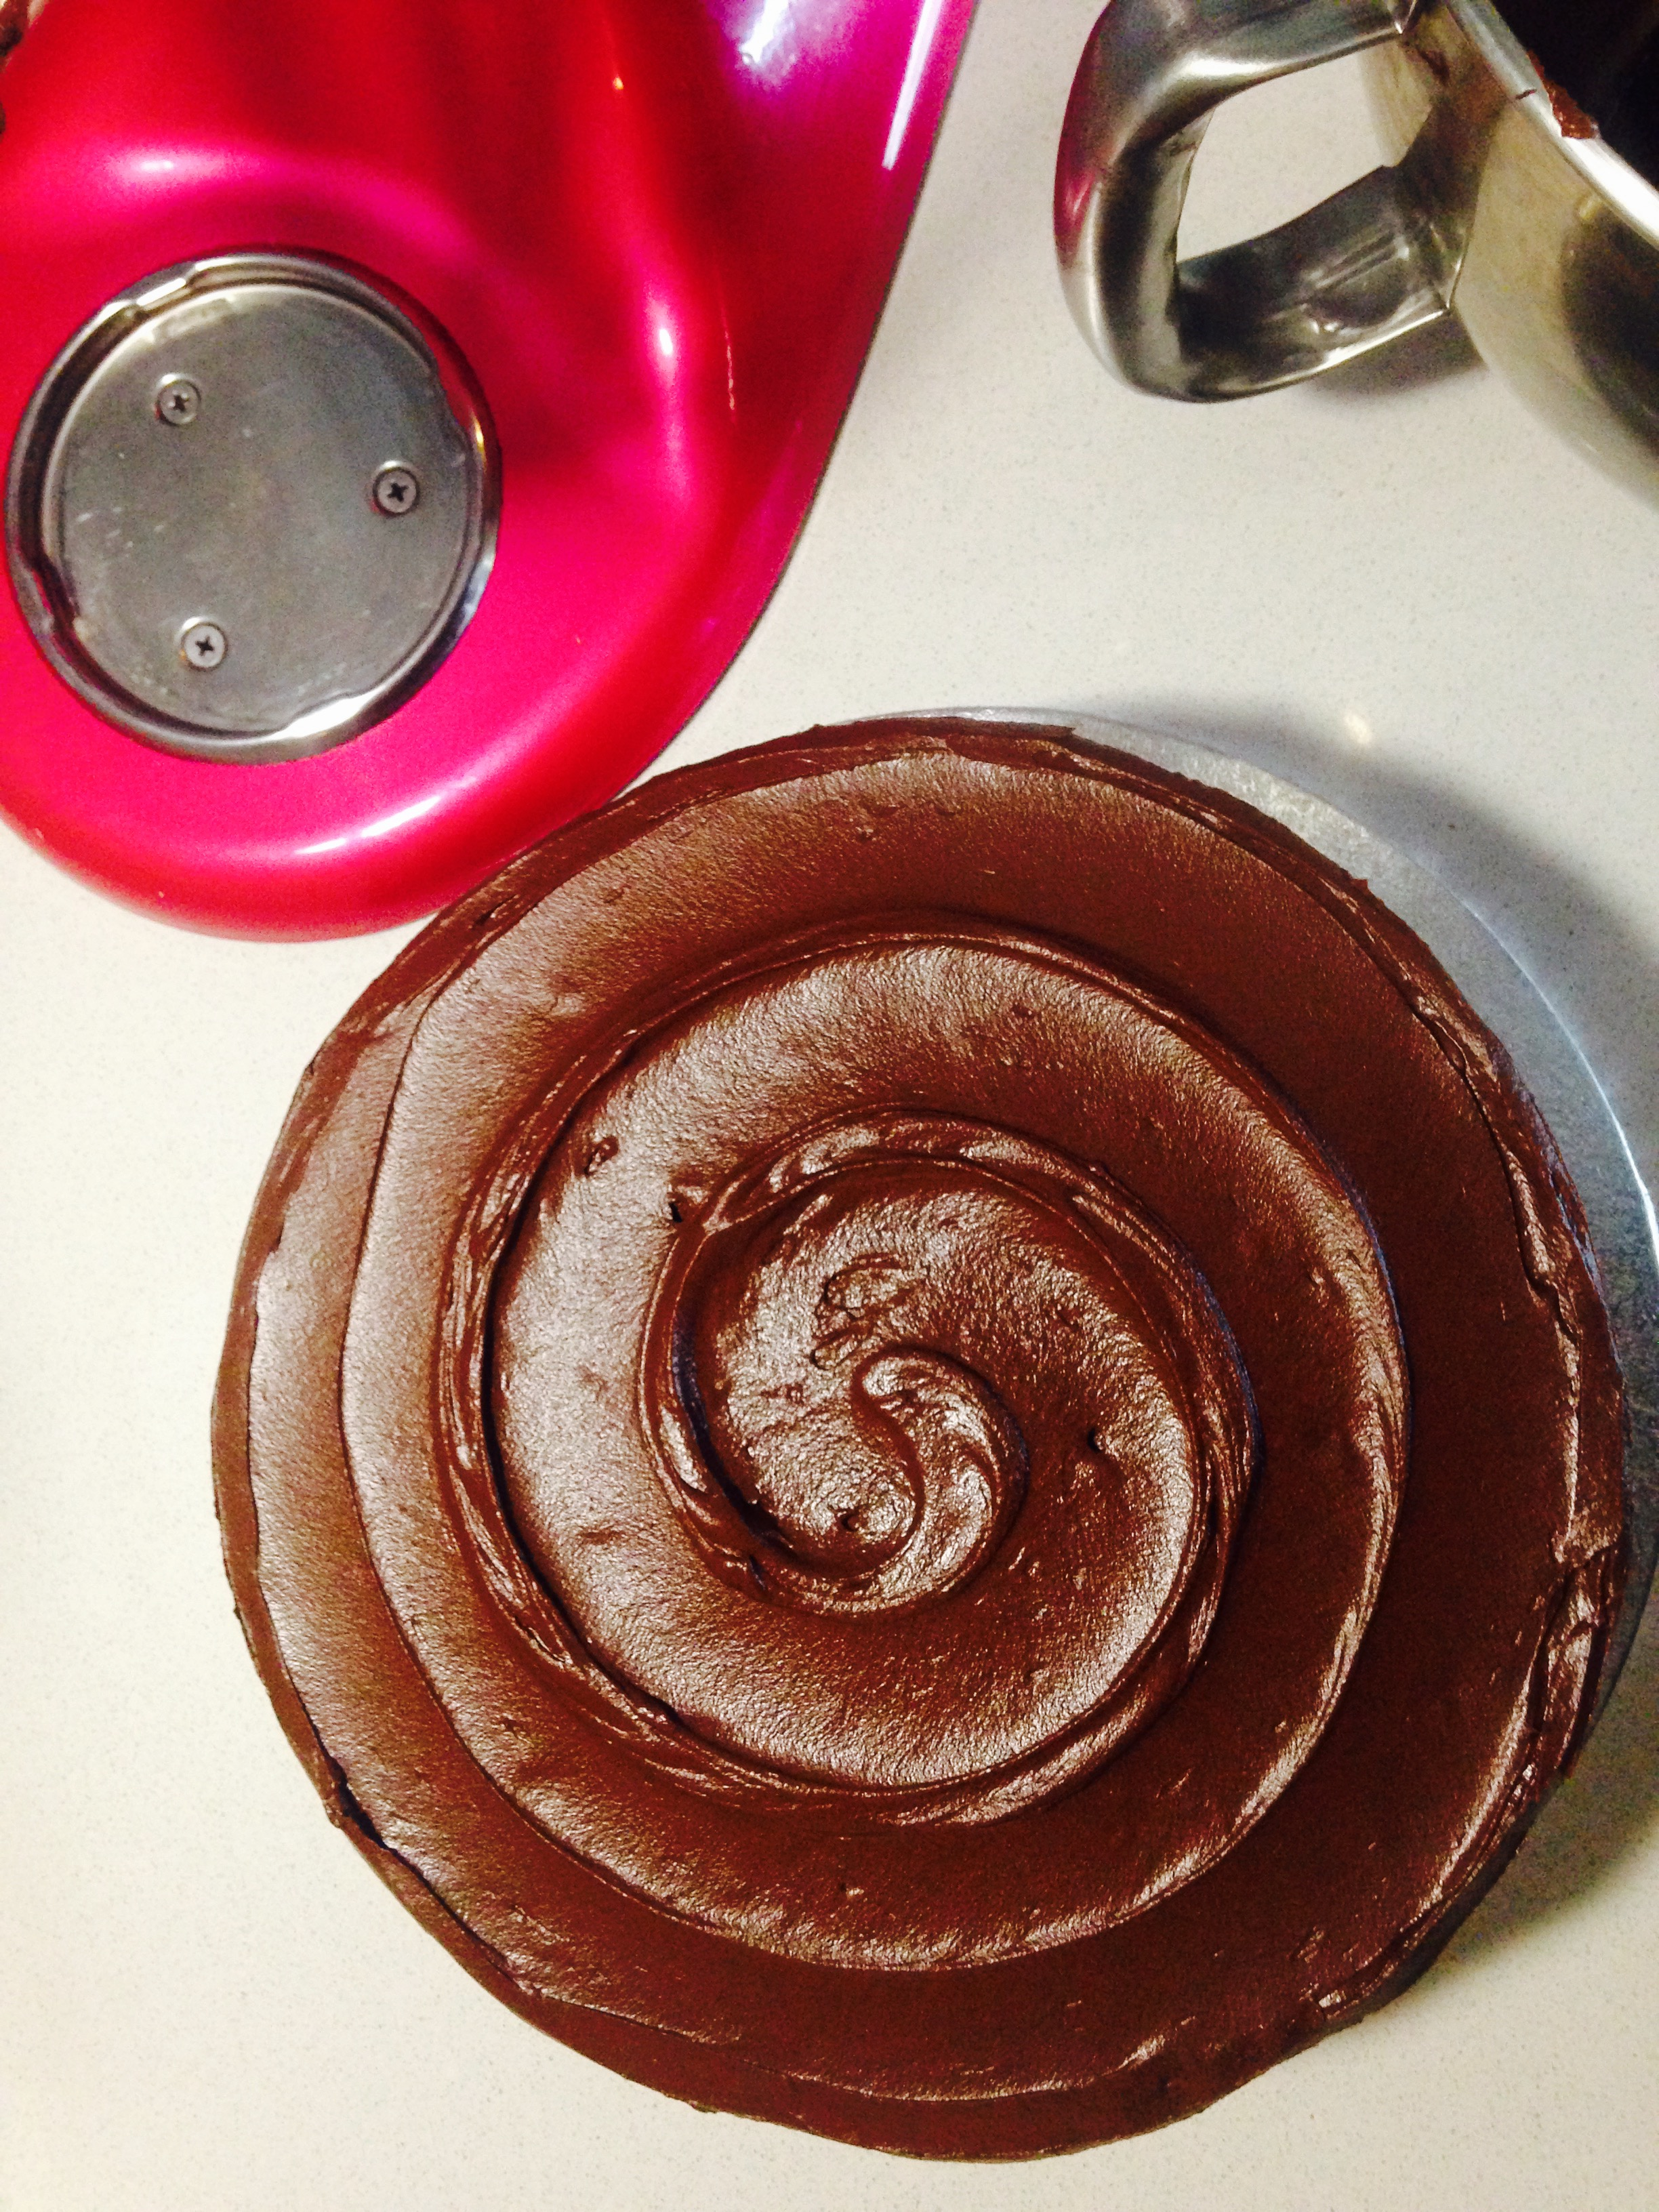 Chocolate Swirl Topped Cake